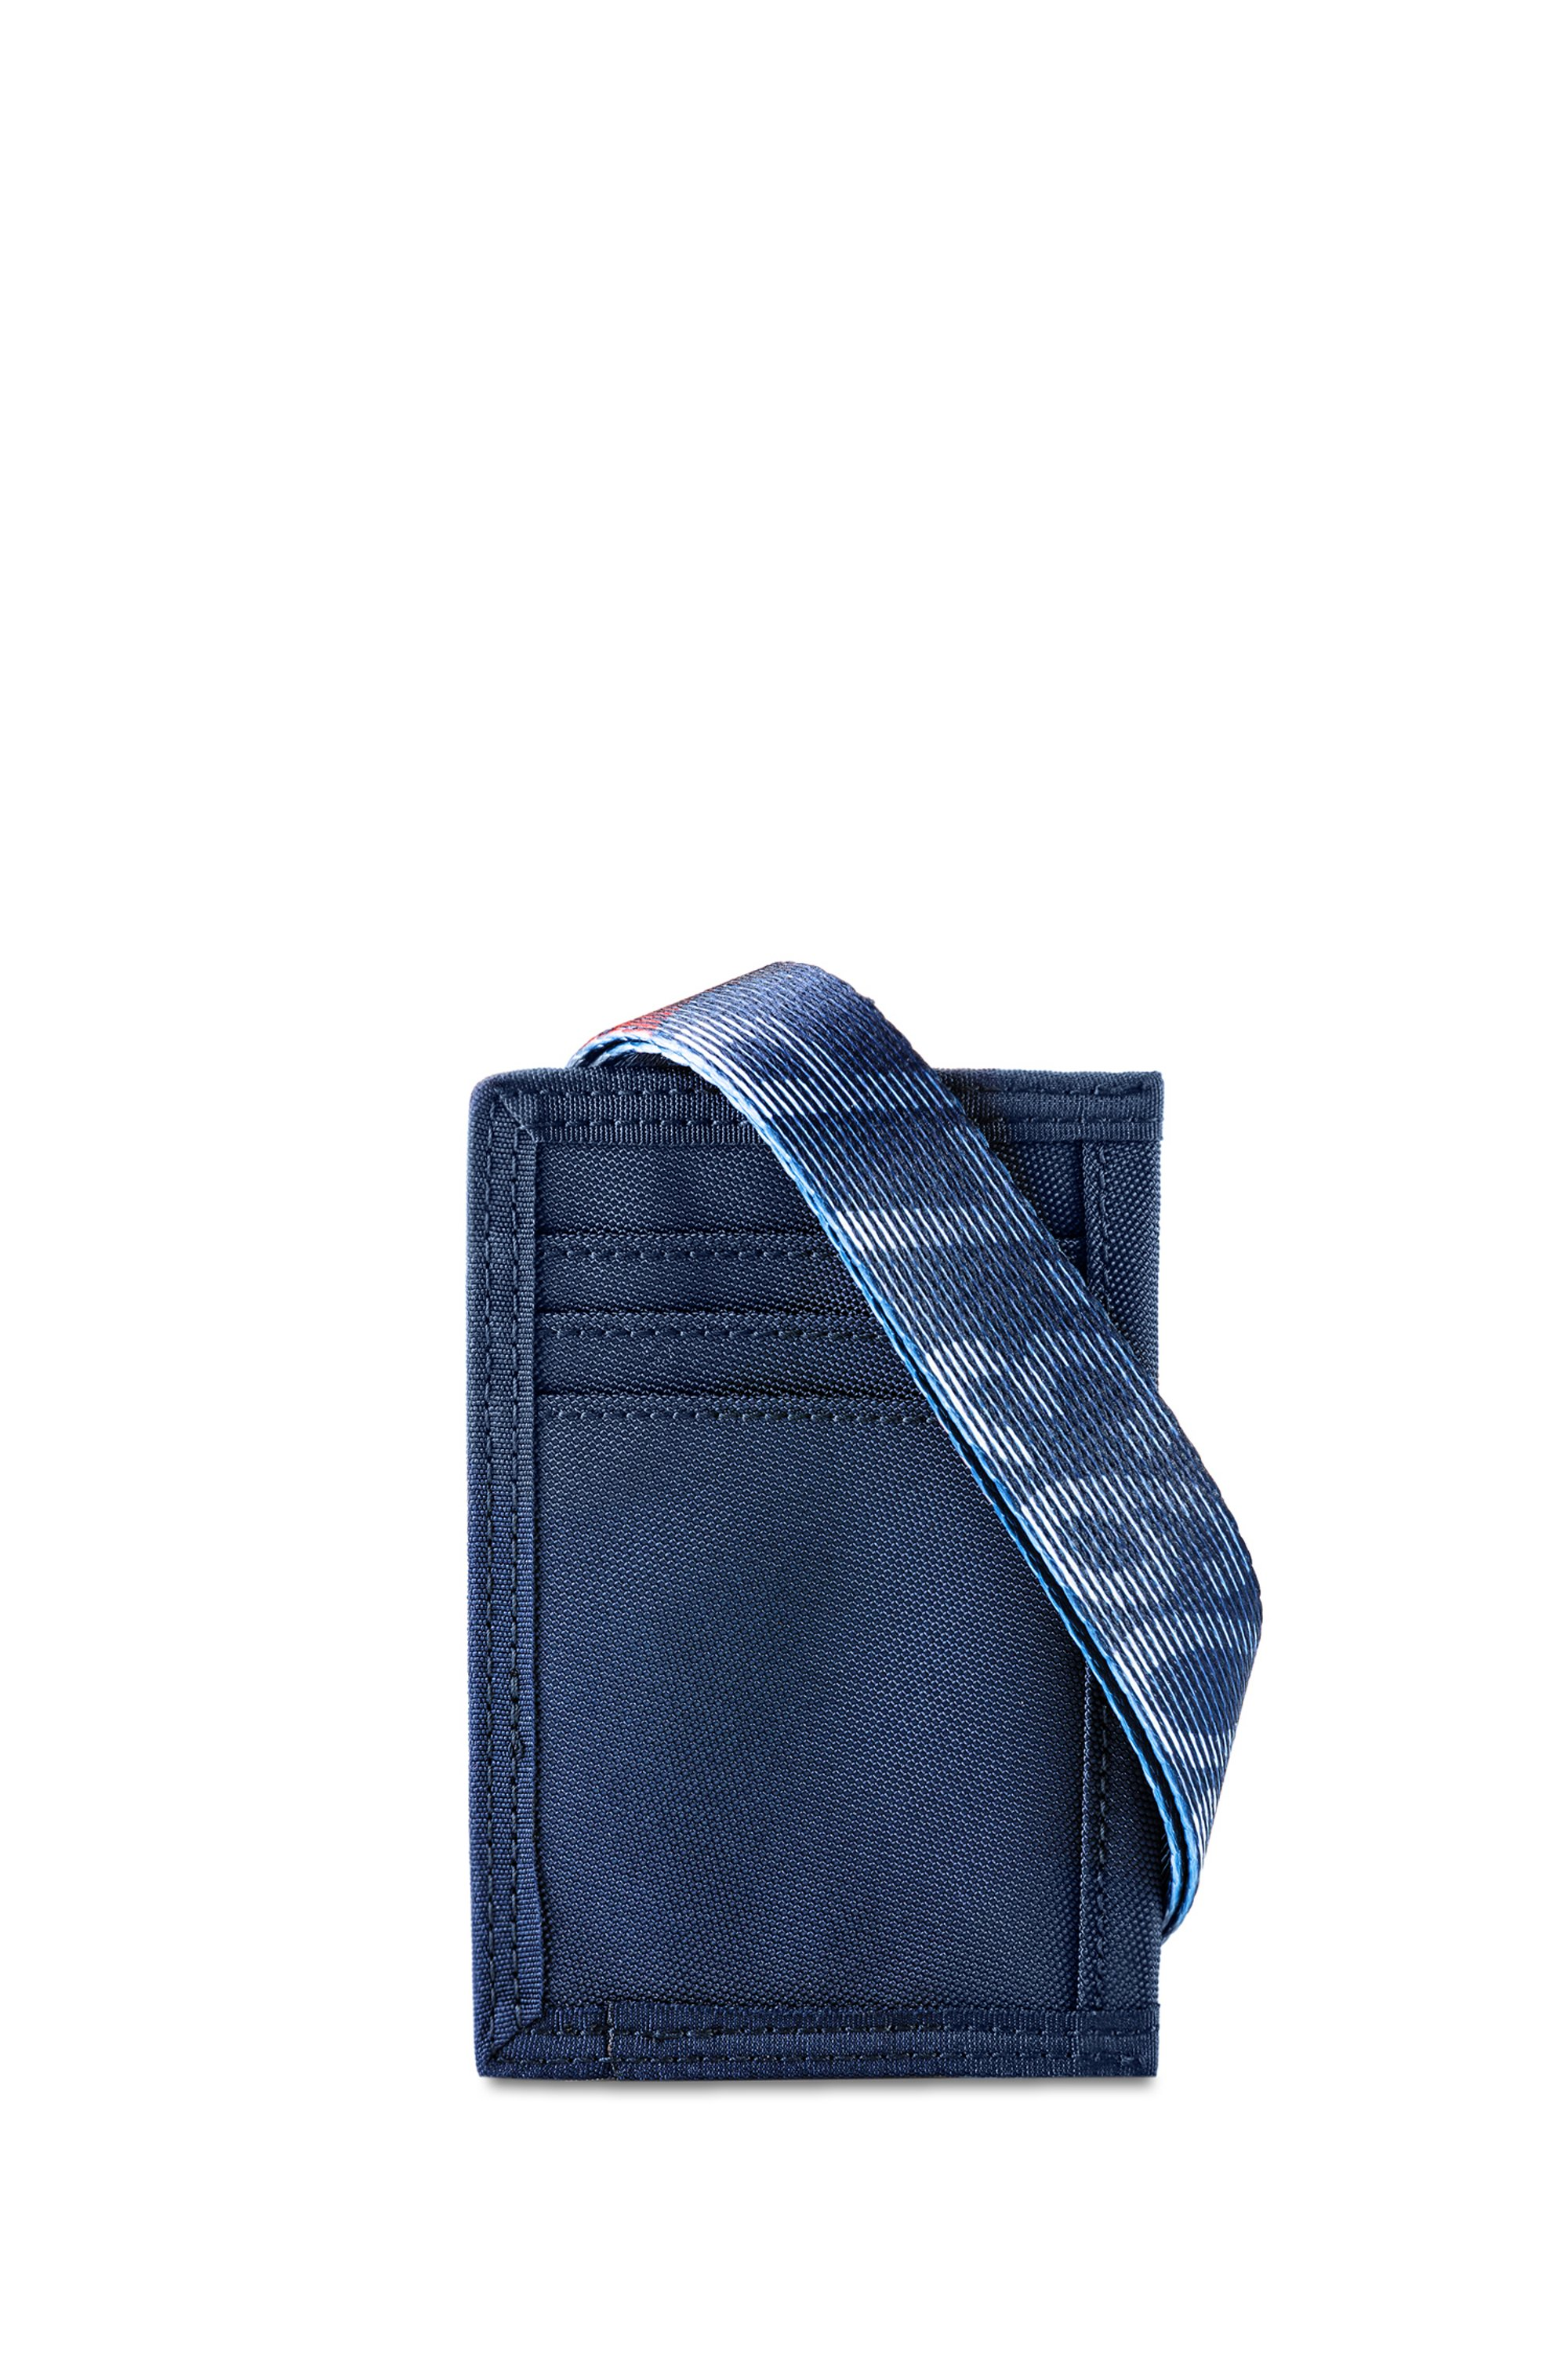 Unisex Nylon card holder with HUGO '93 branded webbing strap